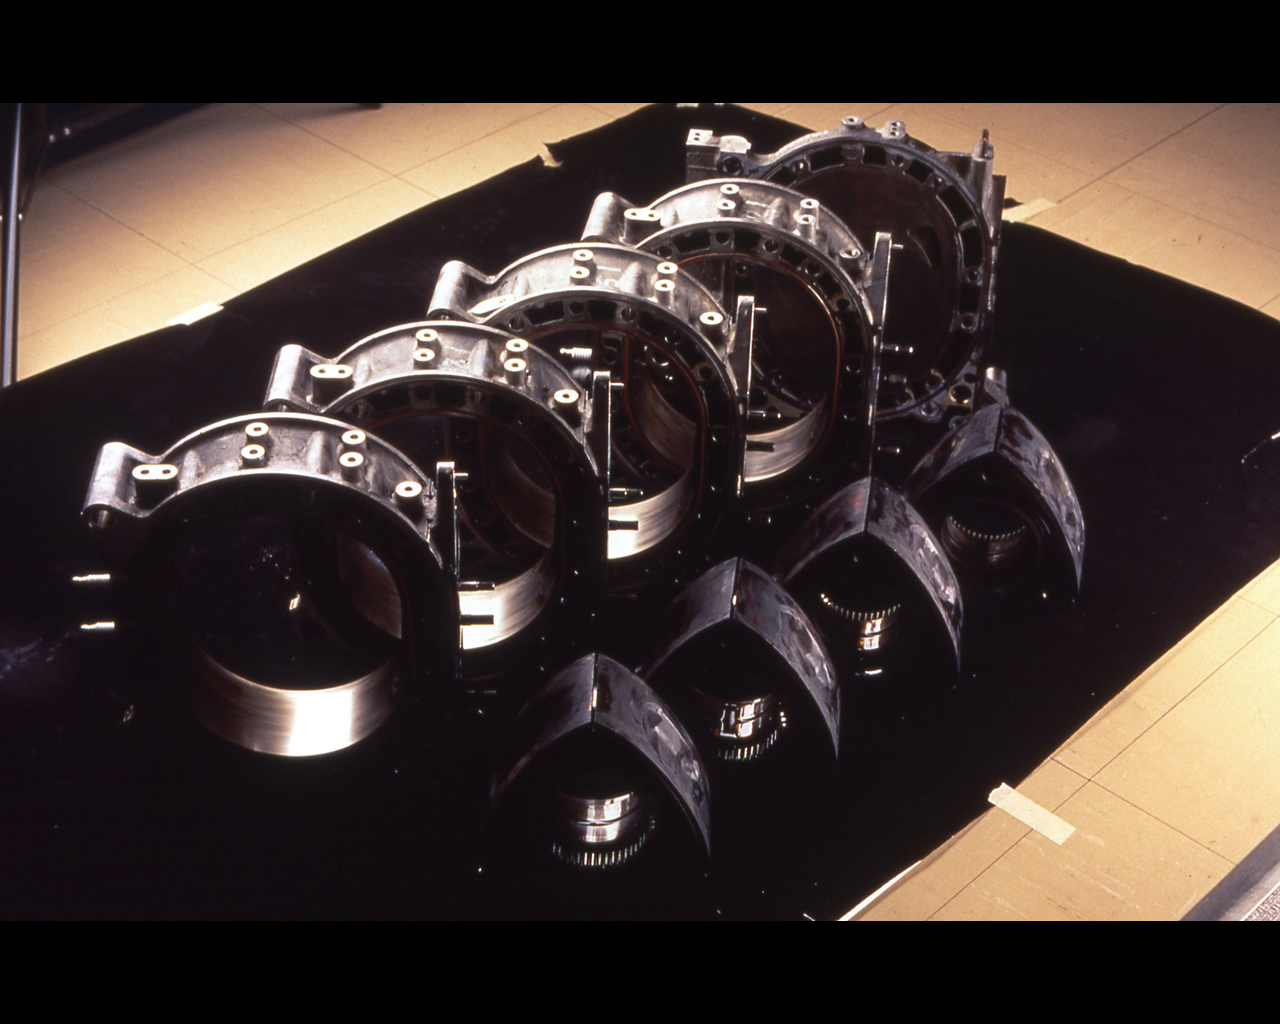 Rotary Engine Wallpaper | www.imgkid.com - The Image Kid ...